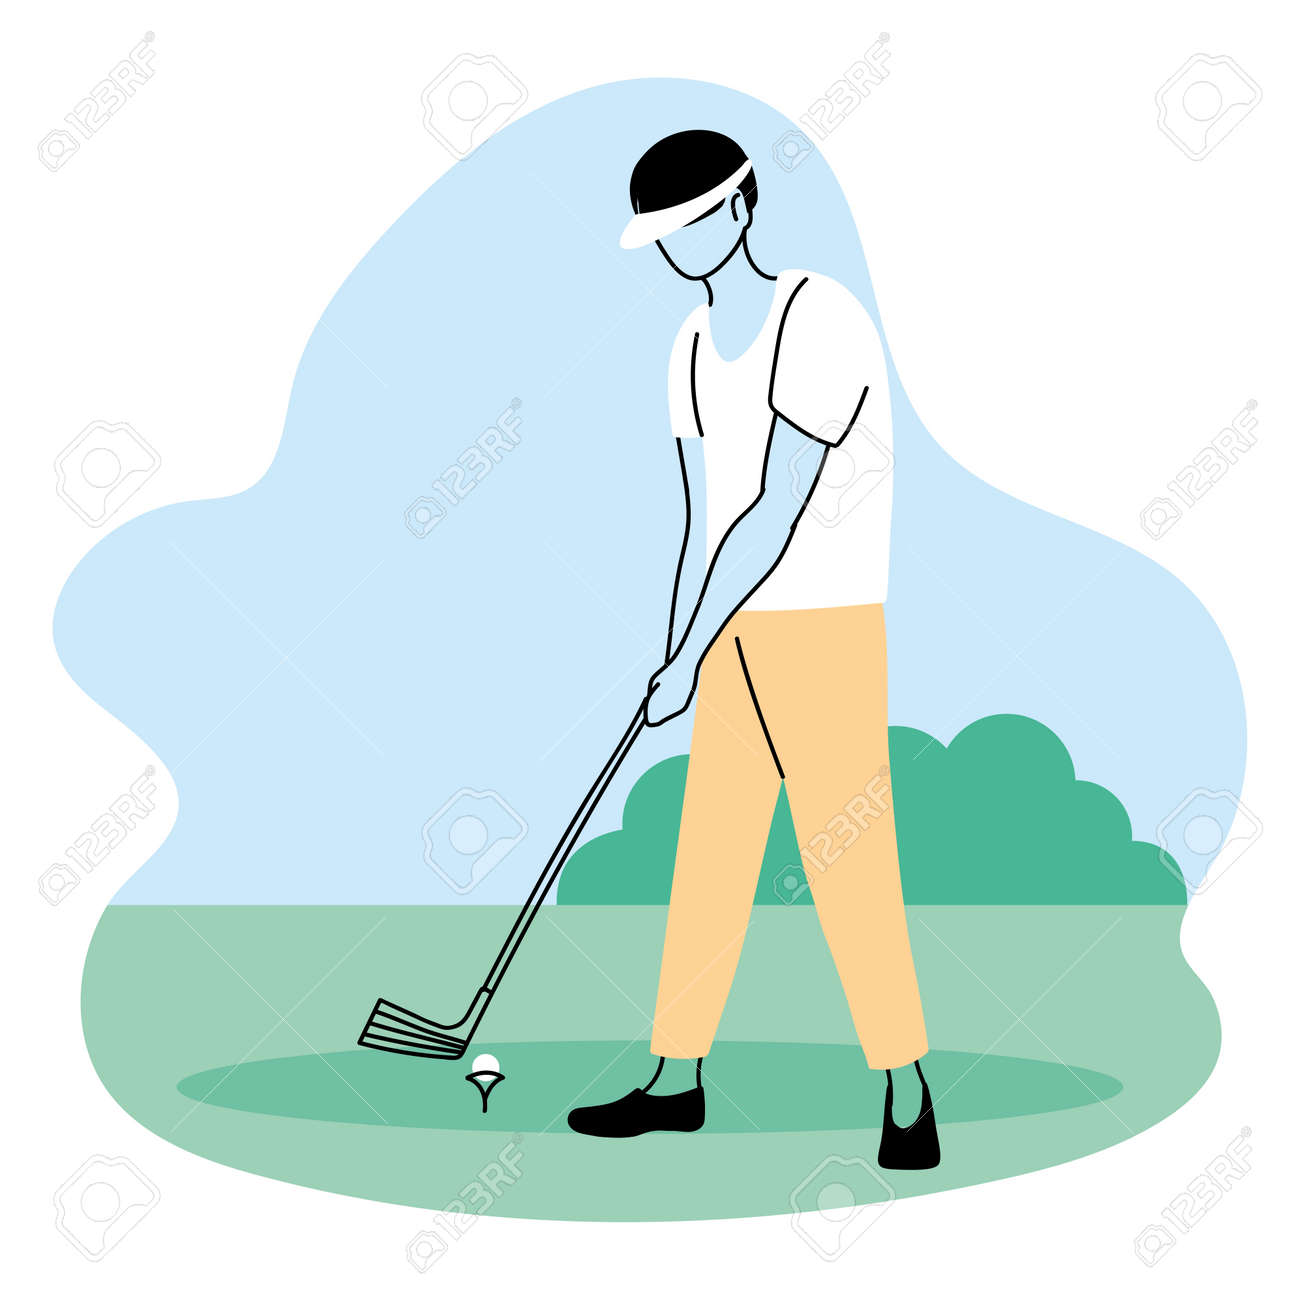 young man playing sports games in park vector illustration desing - 154103976